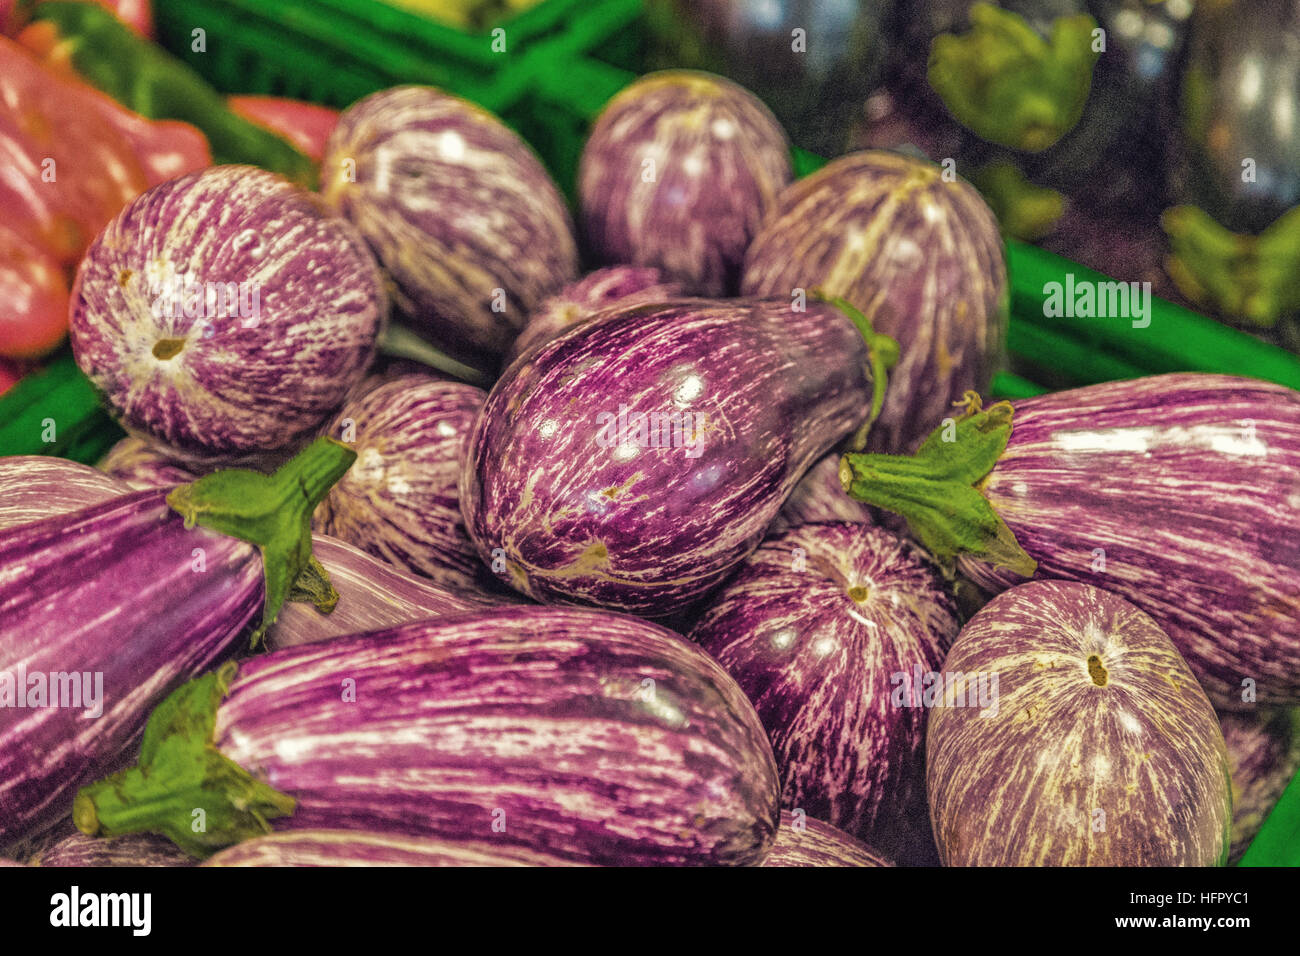 32f23f4f1c striped eggplant in green box for sale on the vegetable counter ...